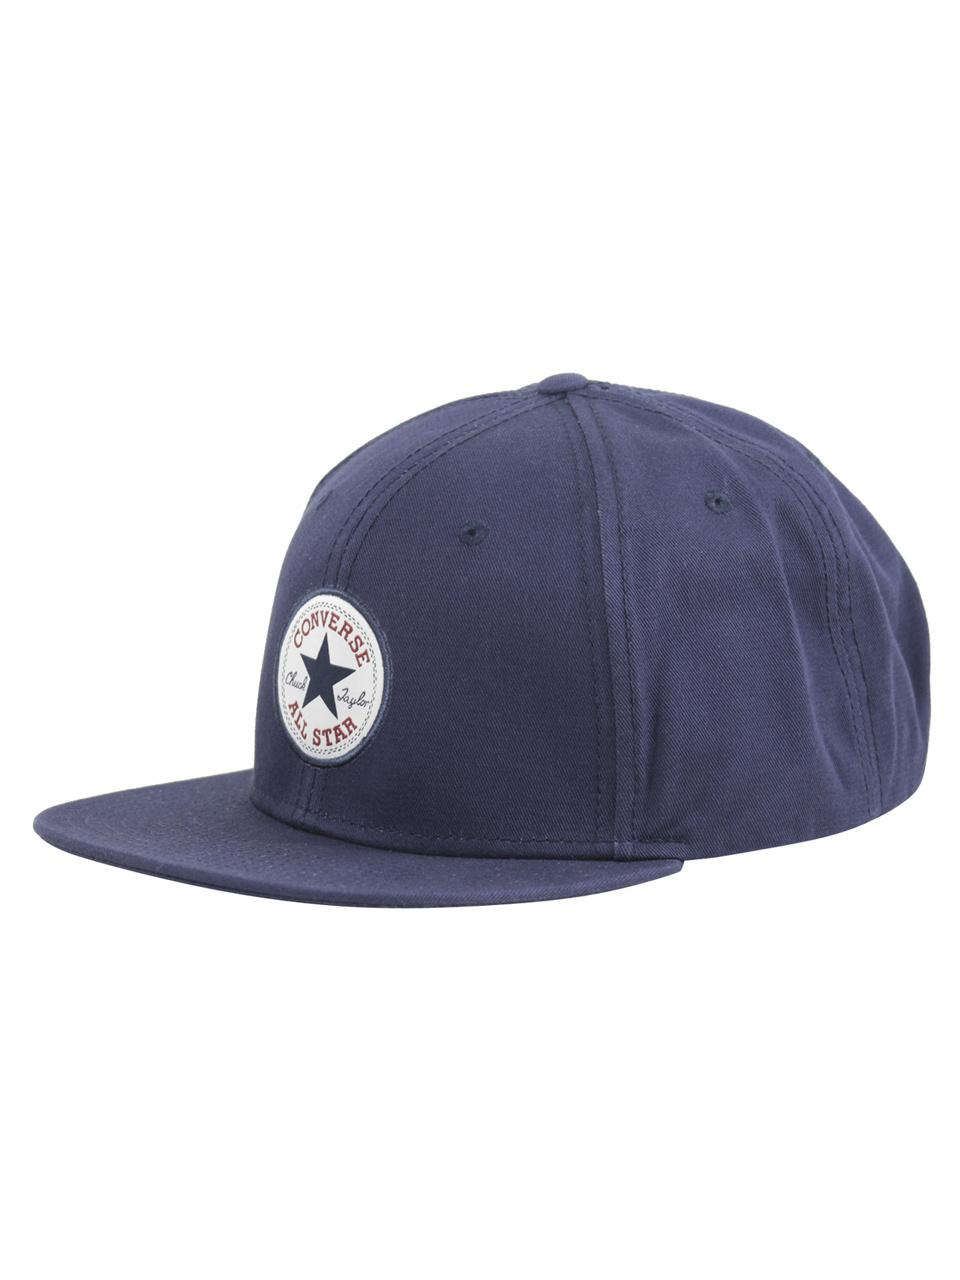 Image of - Blue - One Size Fits Most